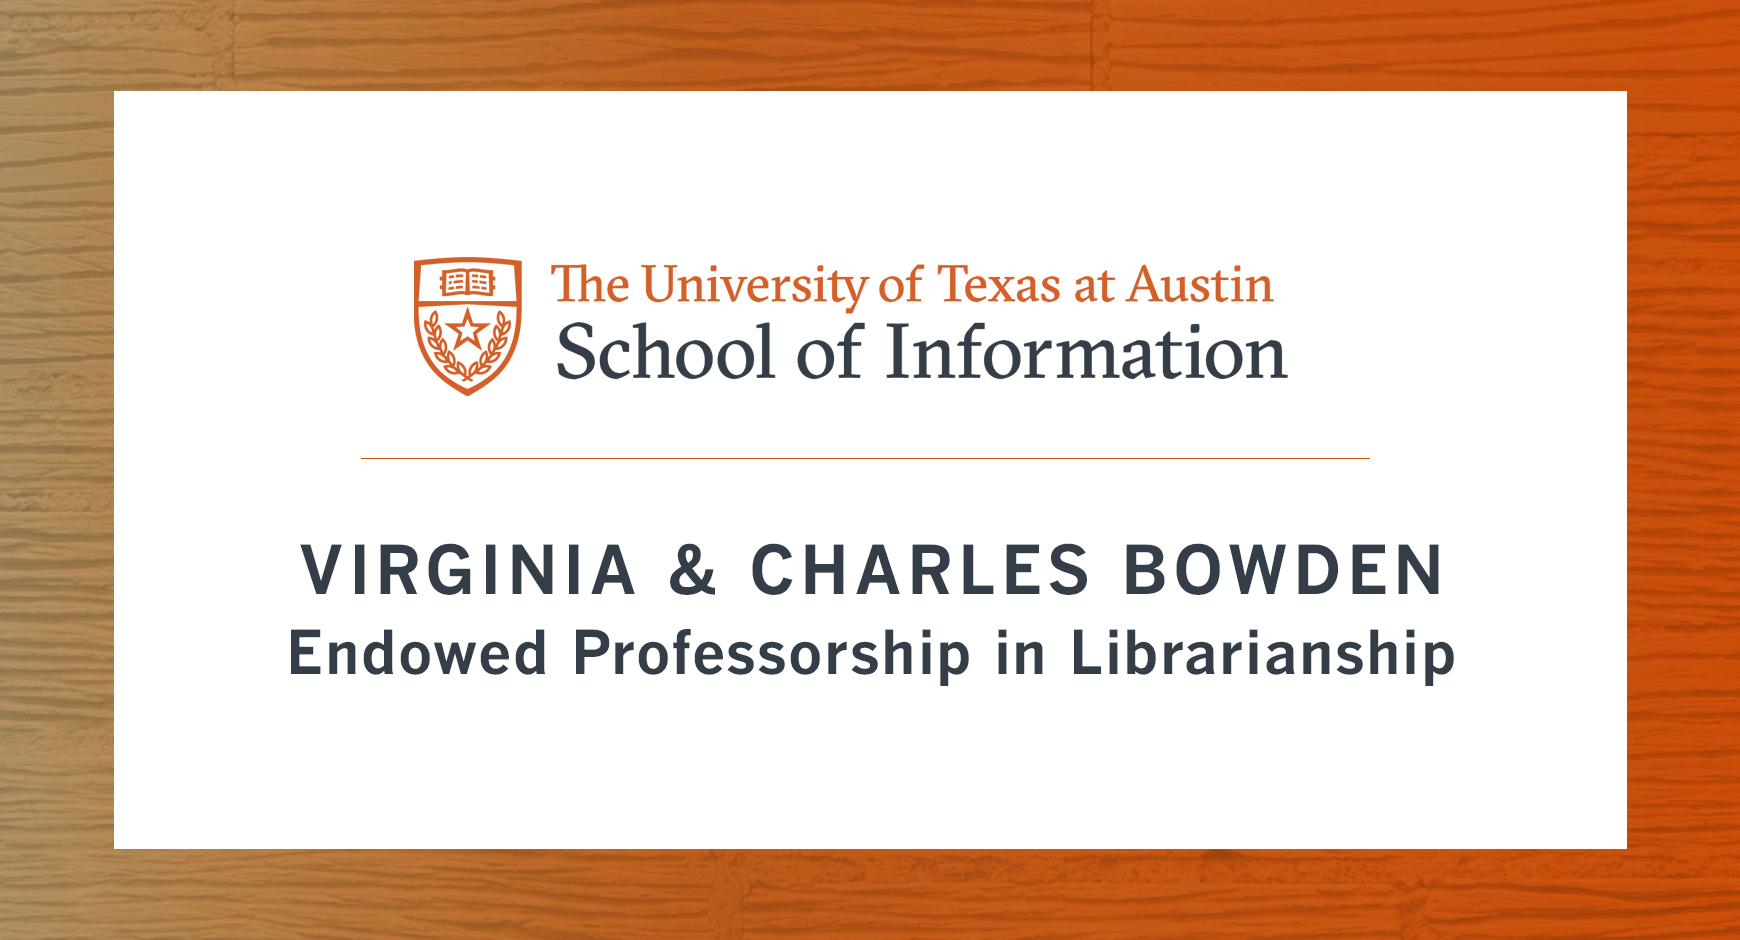 Virginia & Charles Bowden Endowed Professorship in Librarianship